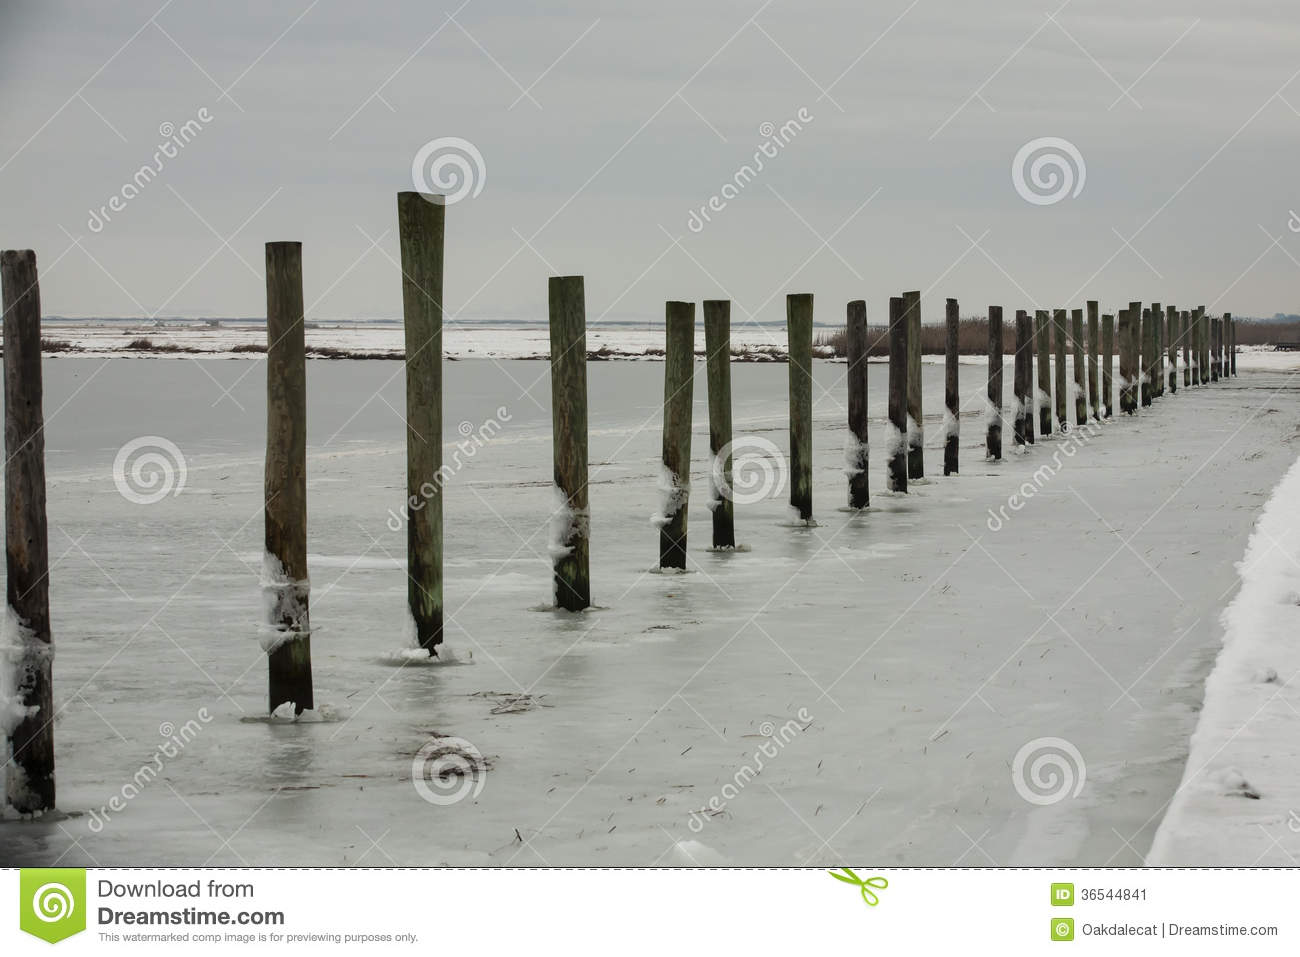 Continuous Line of Dock Piles in Frozen Water